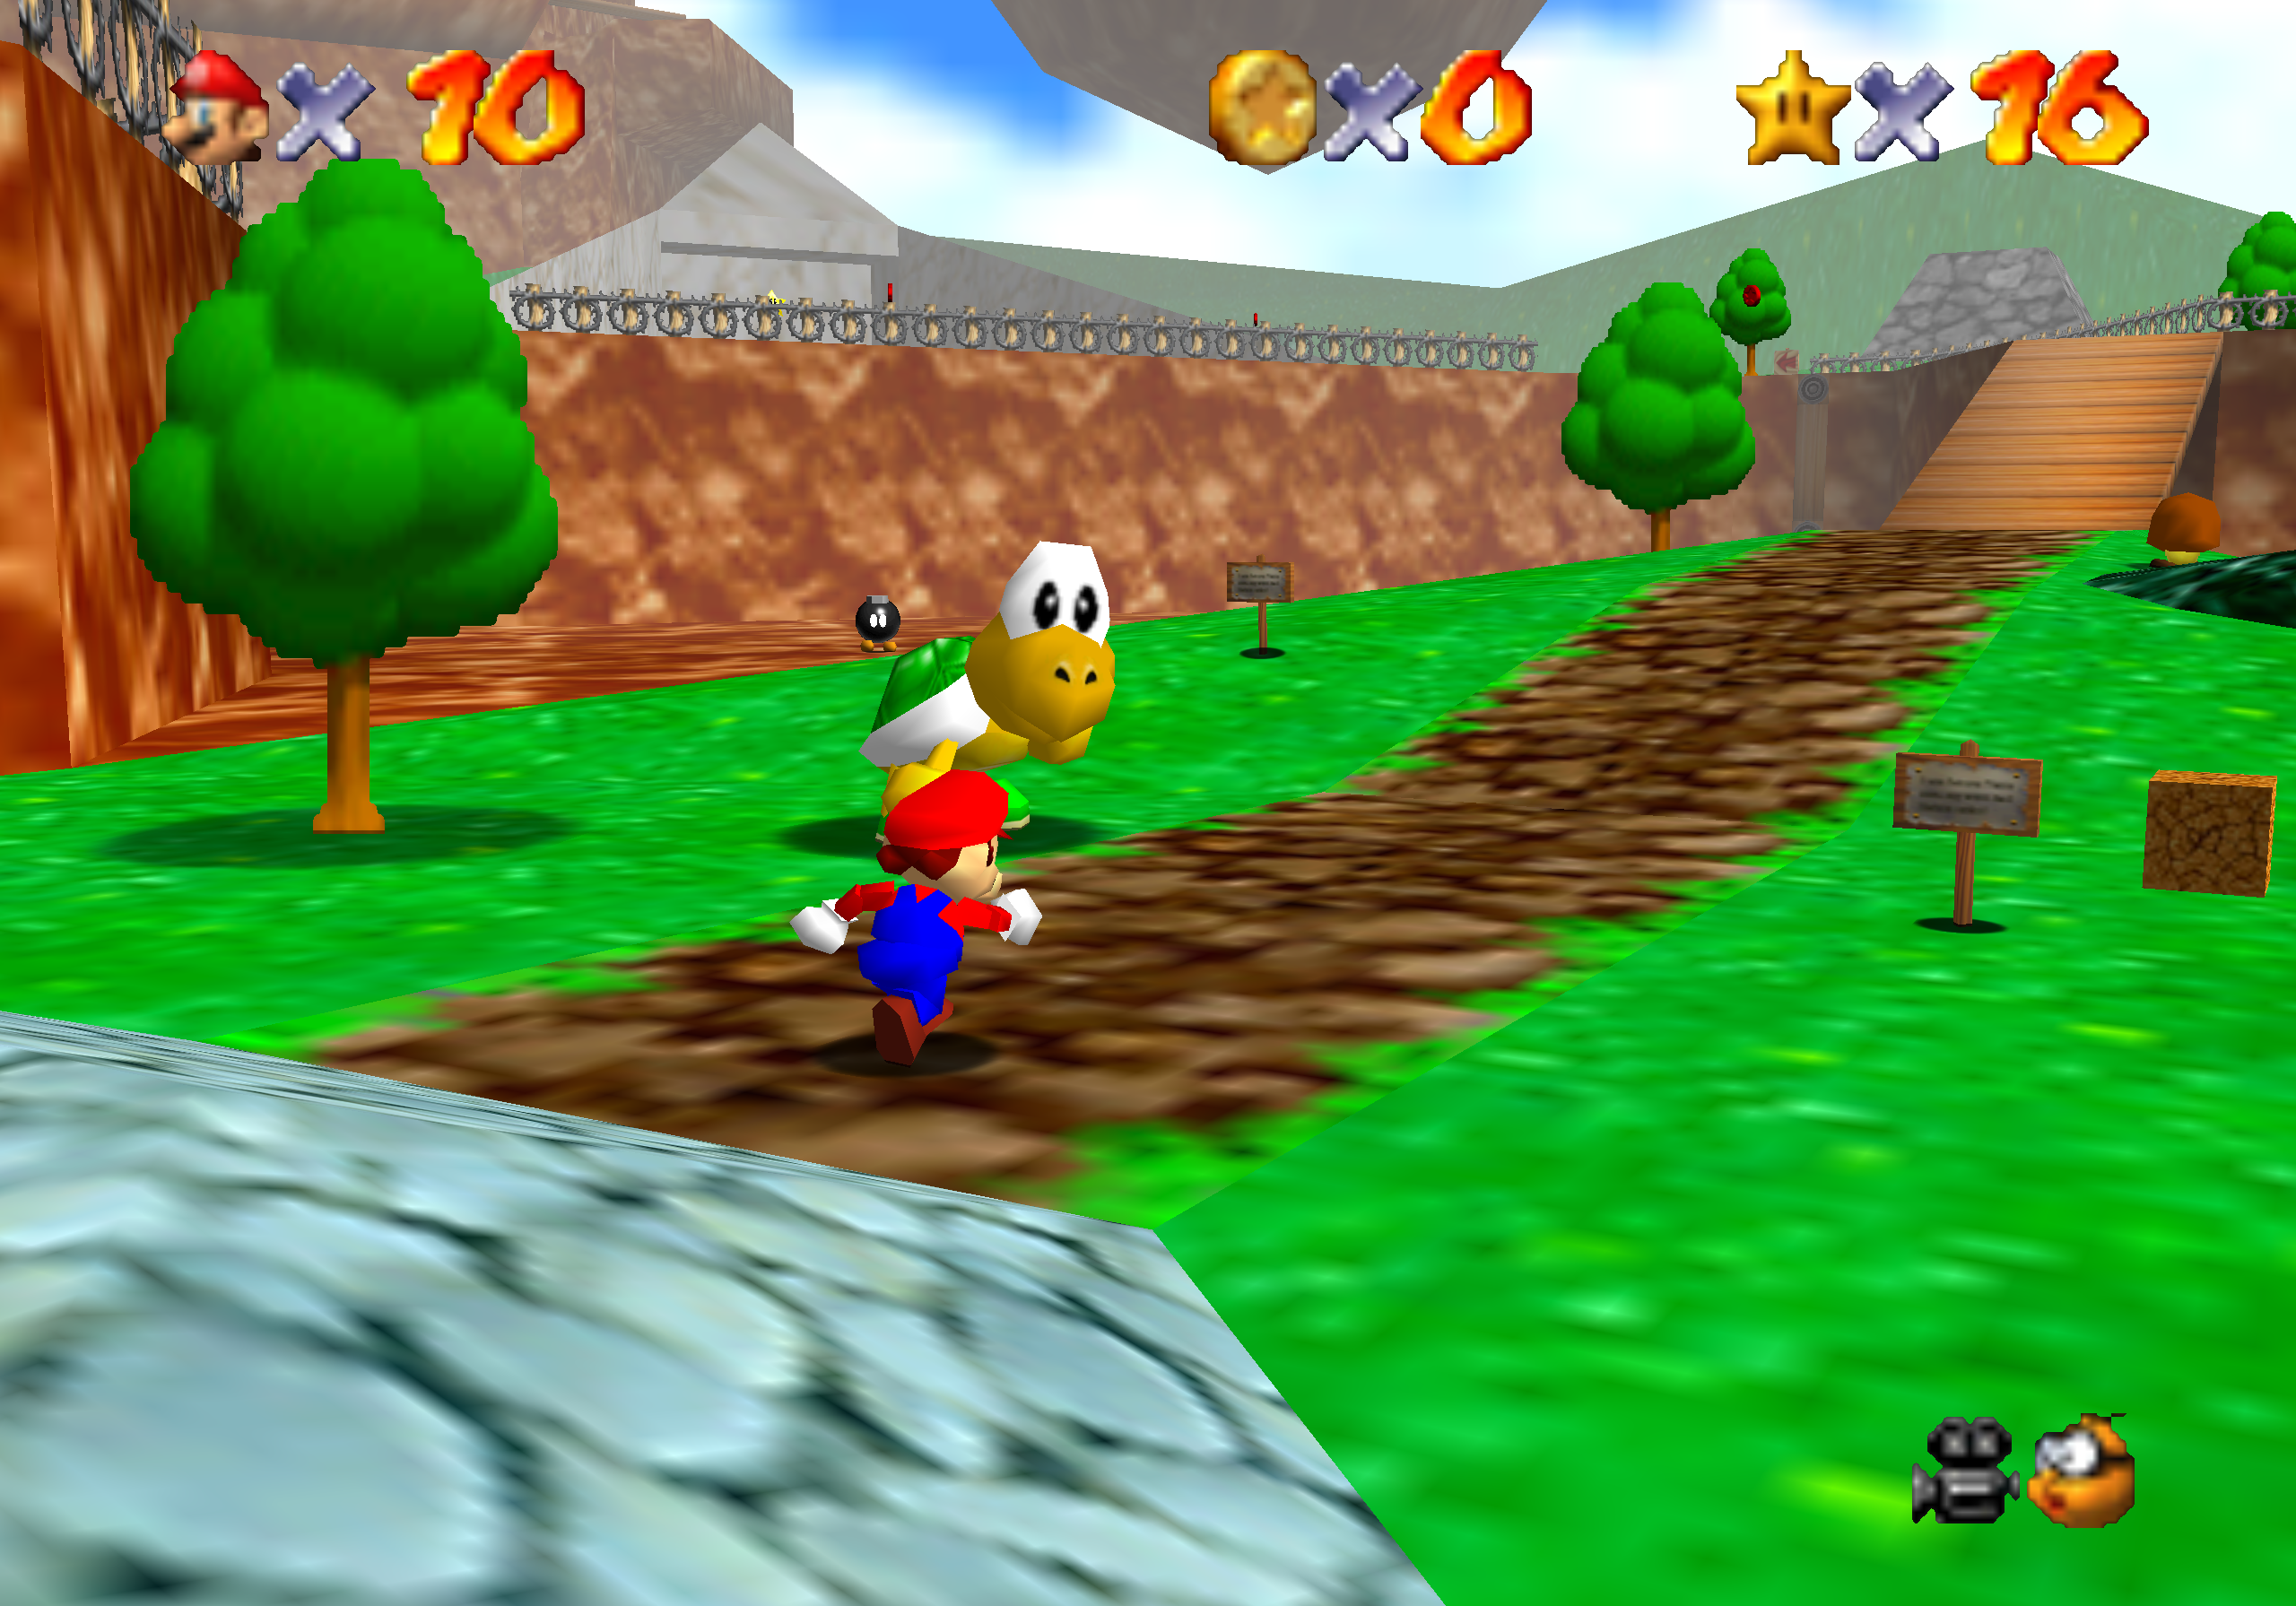 N64 Games On Wii U Virtual Console Come With Scans Of